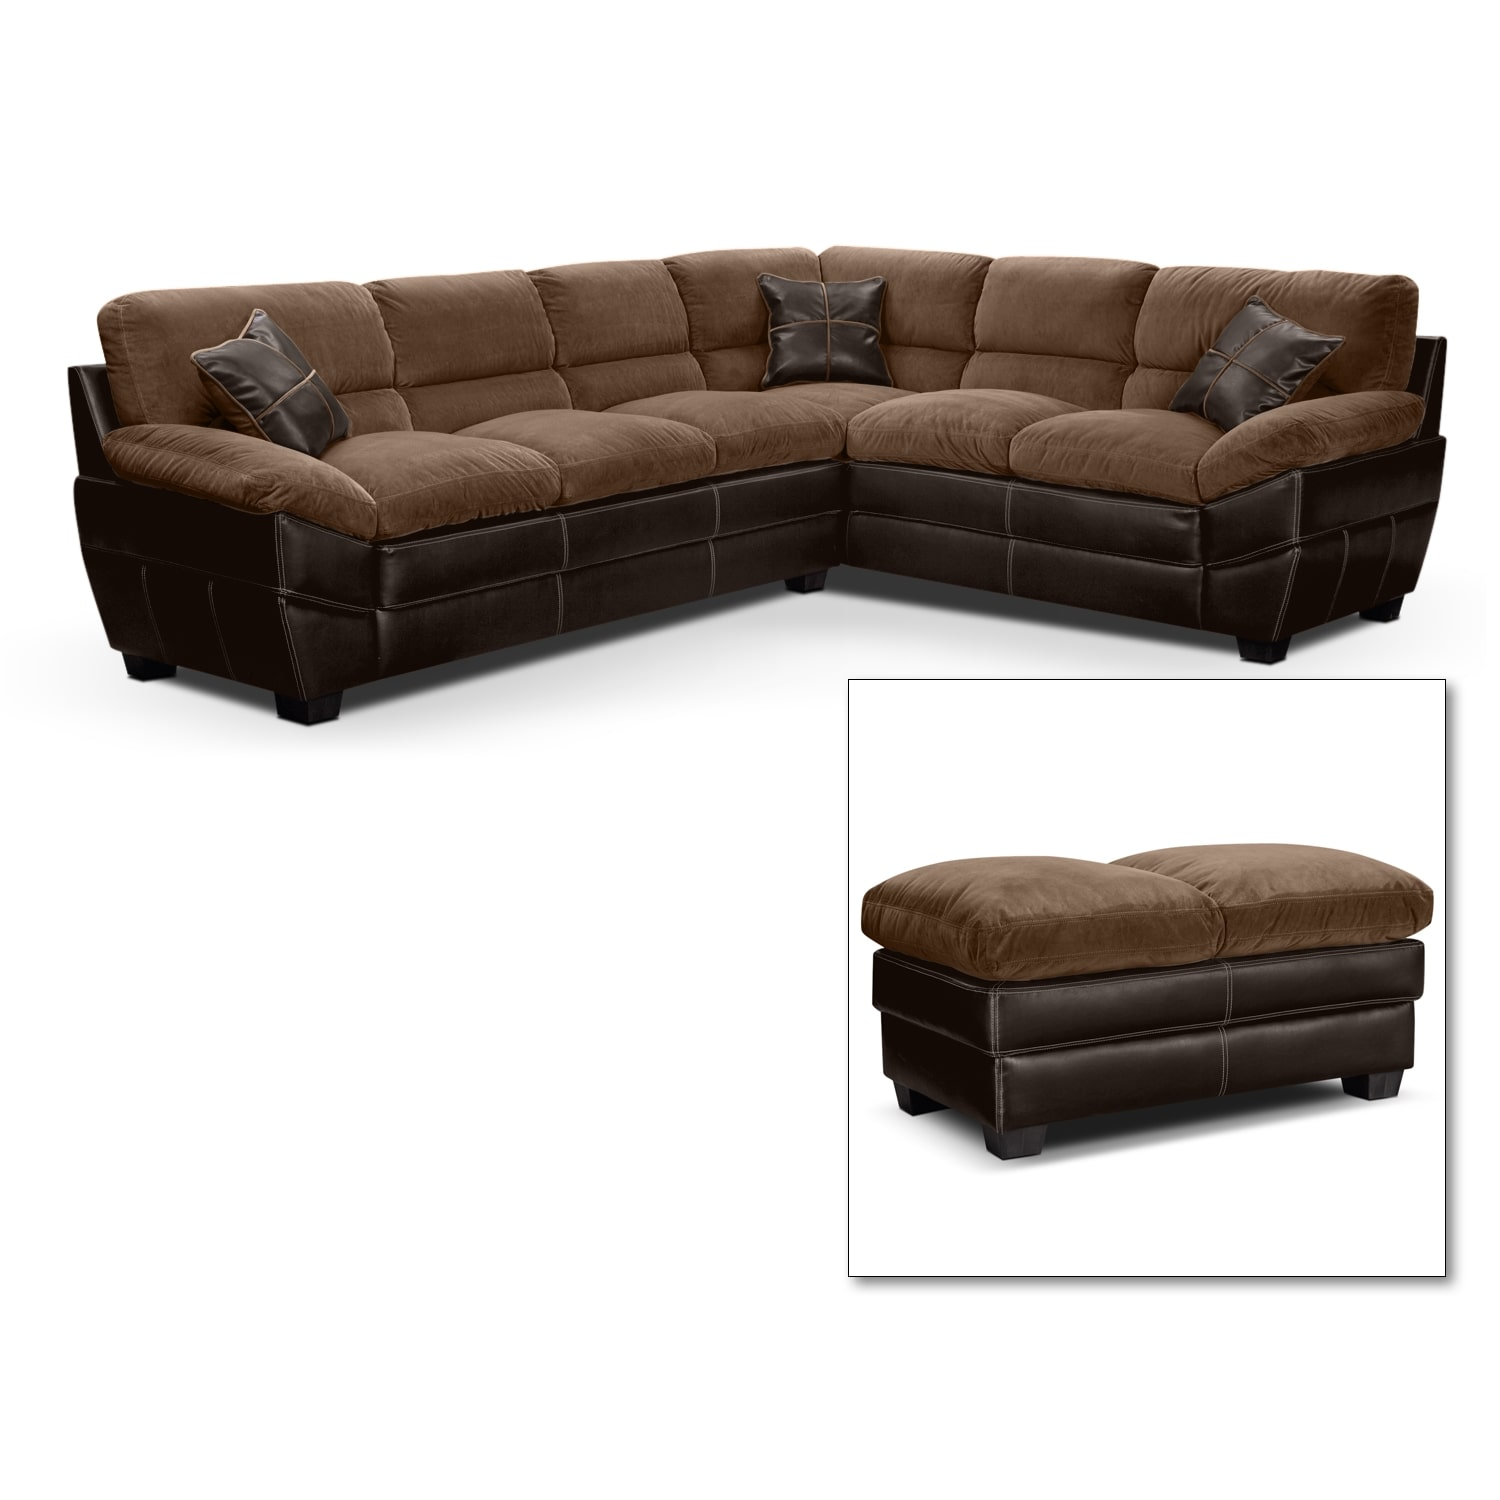 Living Room Furniture - Chandler Beige II 2 Pc. Sectional and Cocktail Ottoman